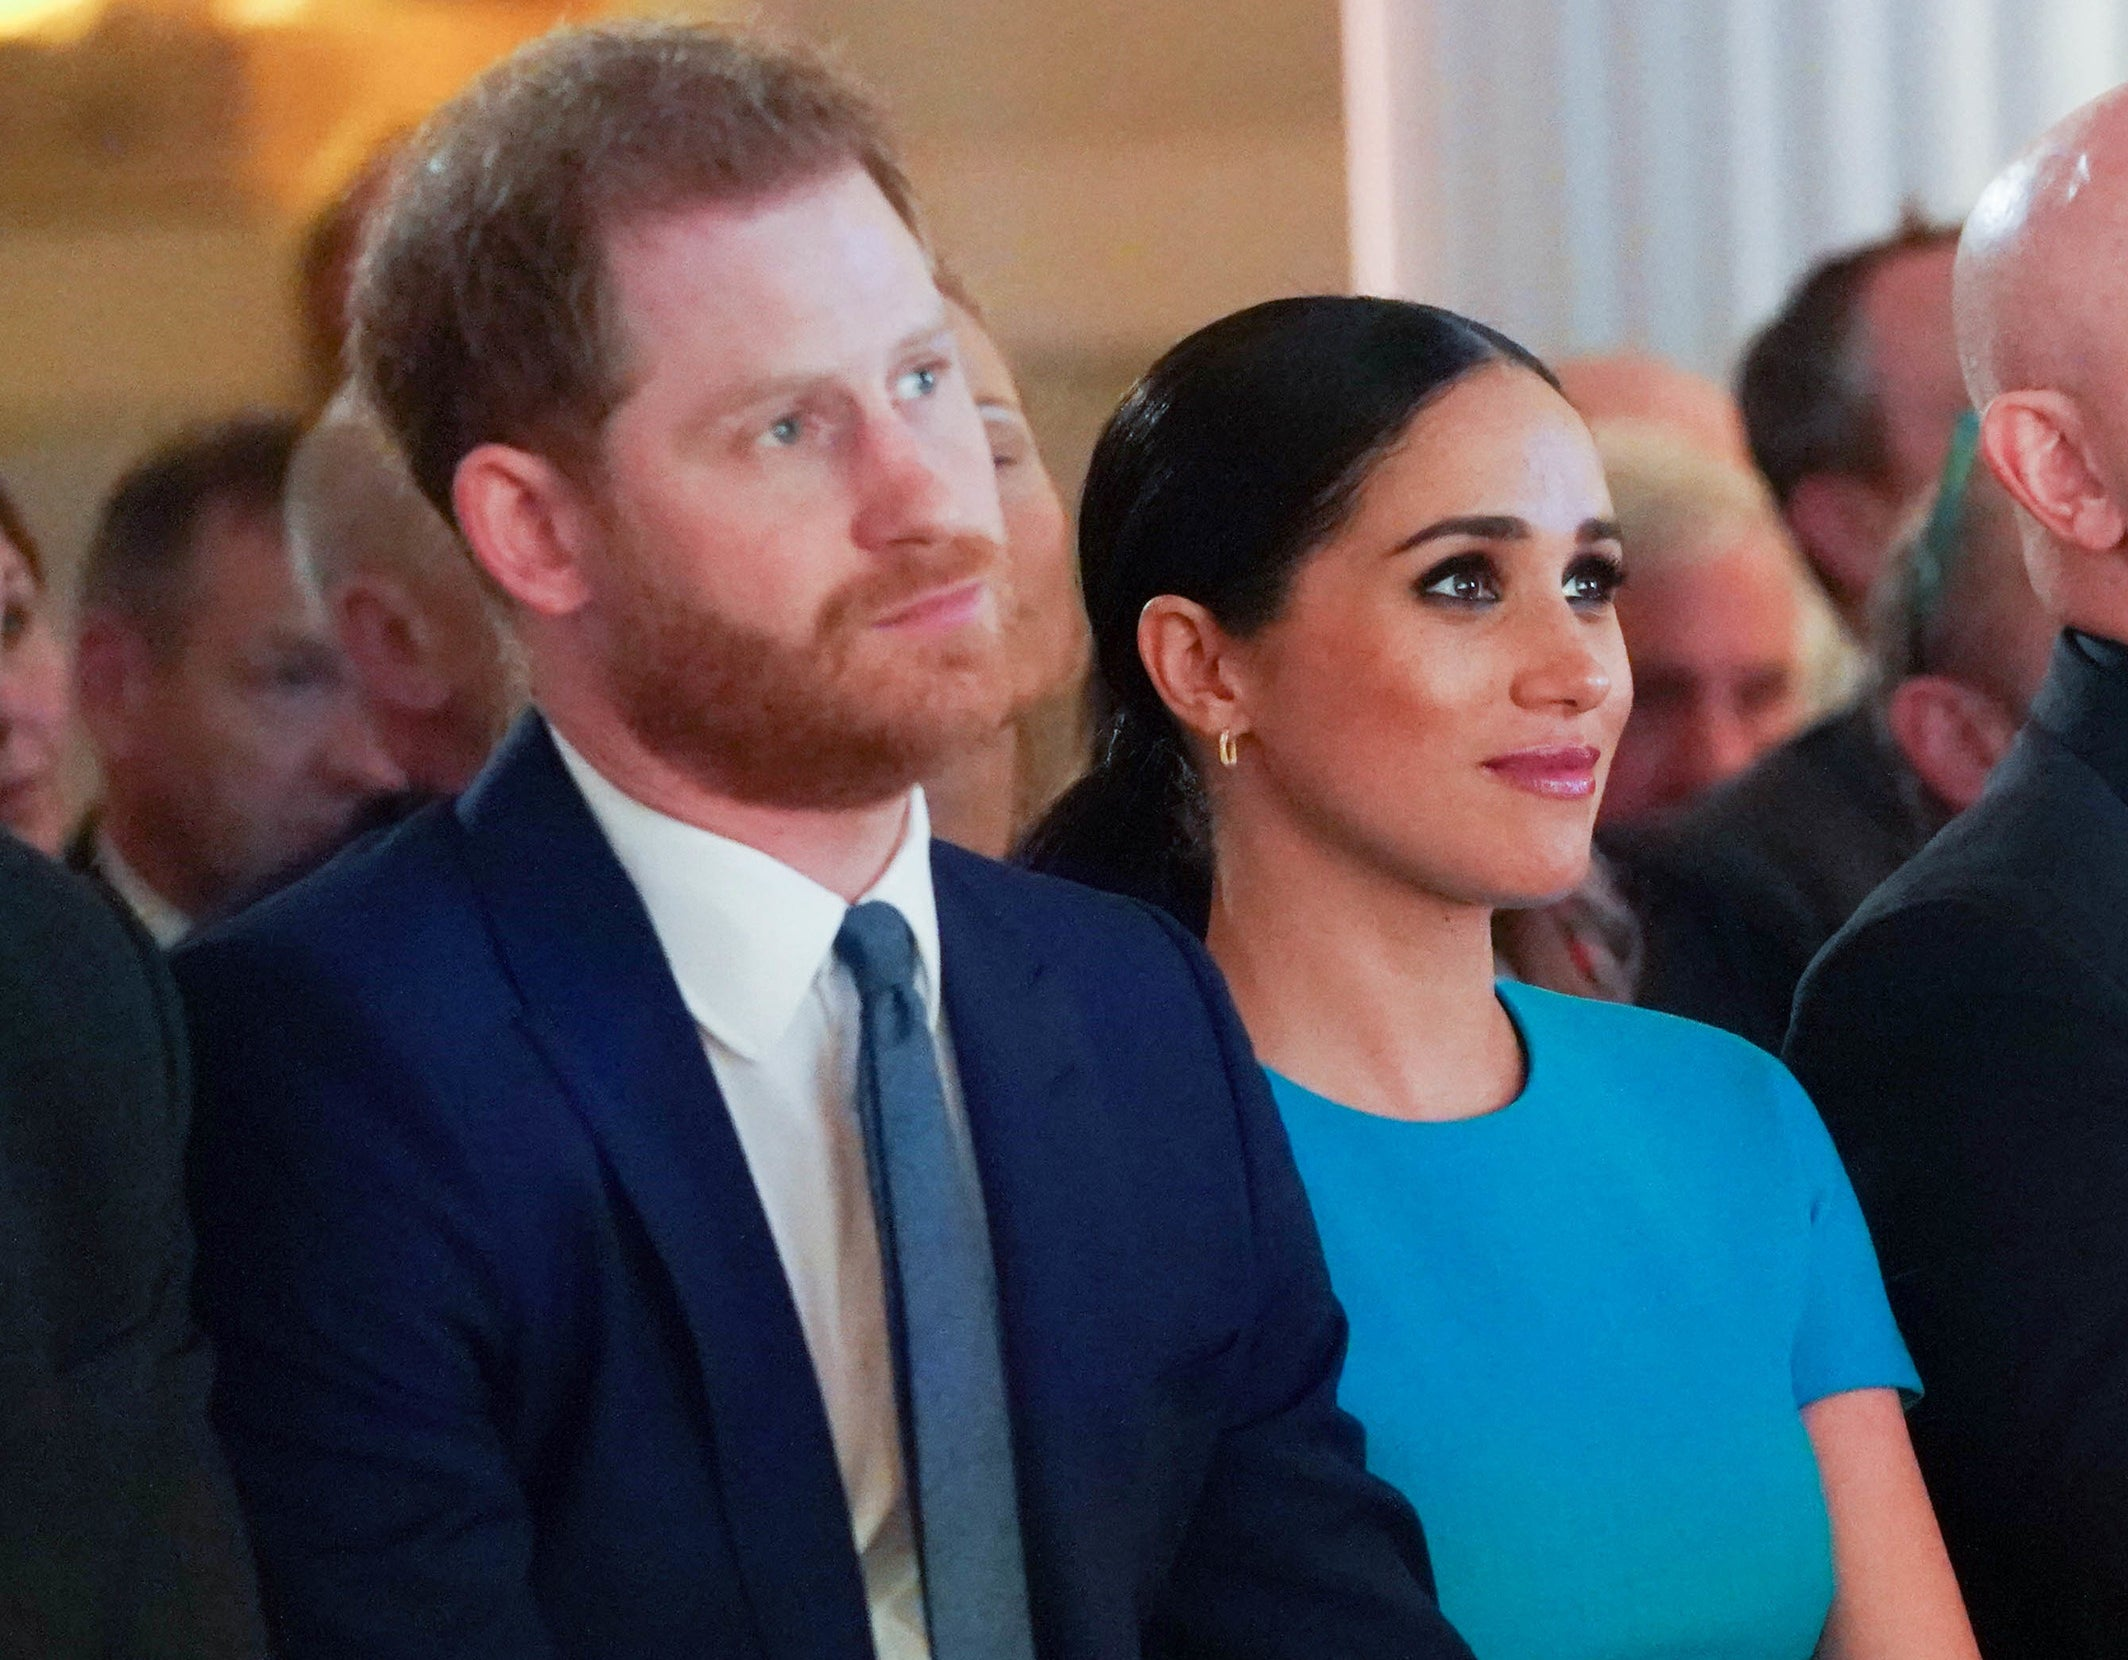 Meghan and Harry look serious while sitting together